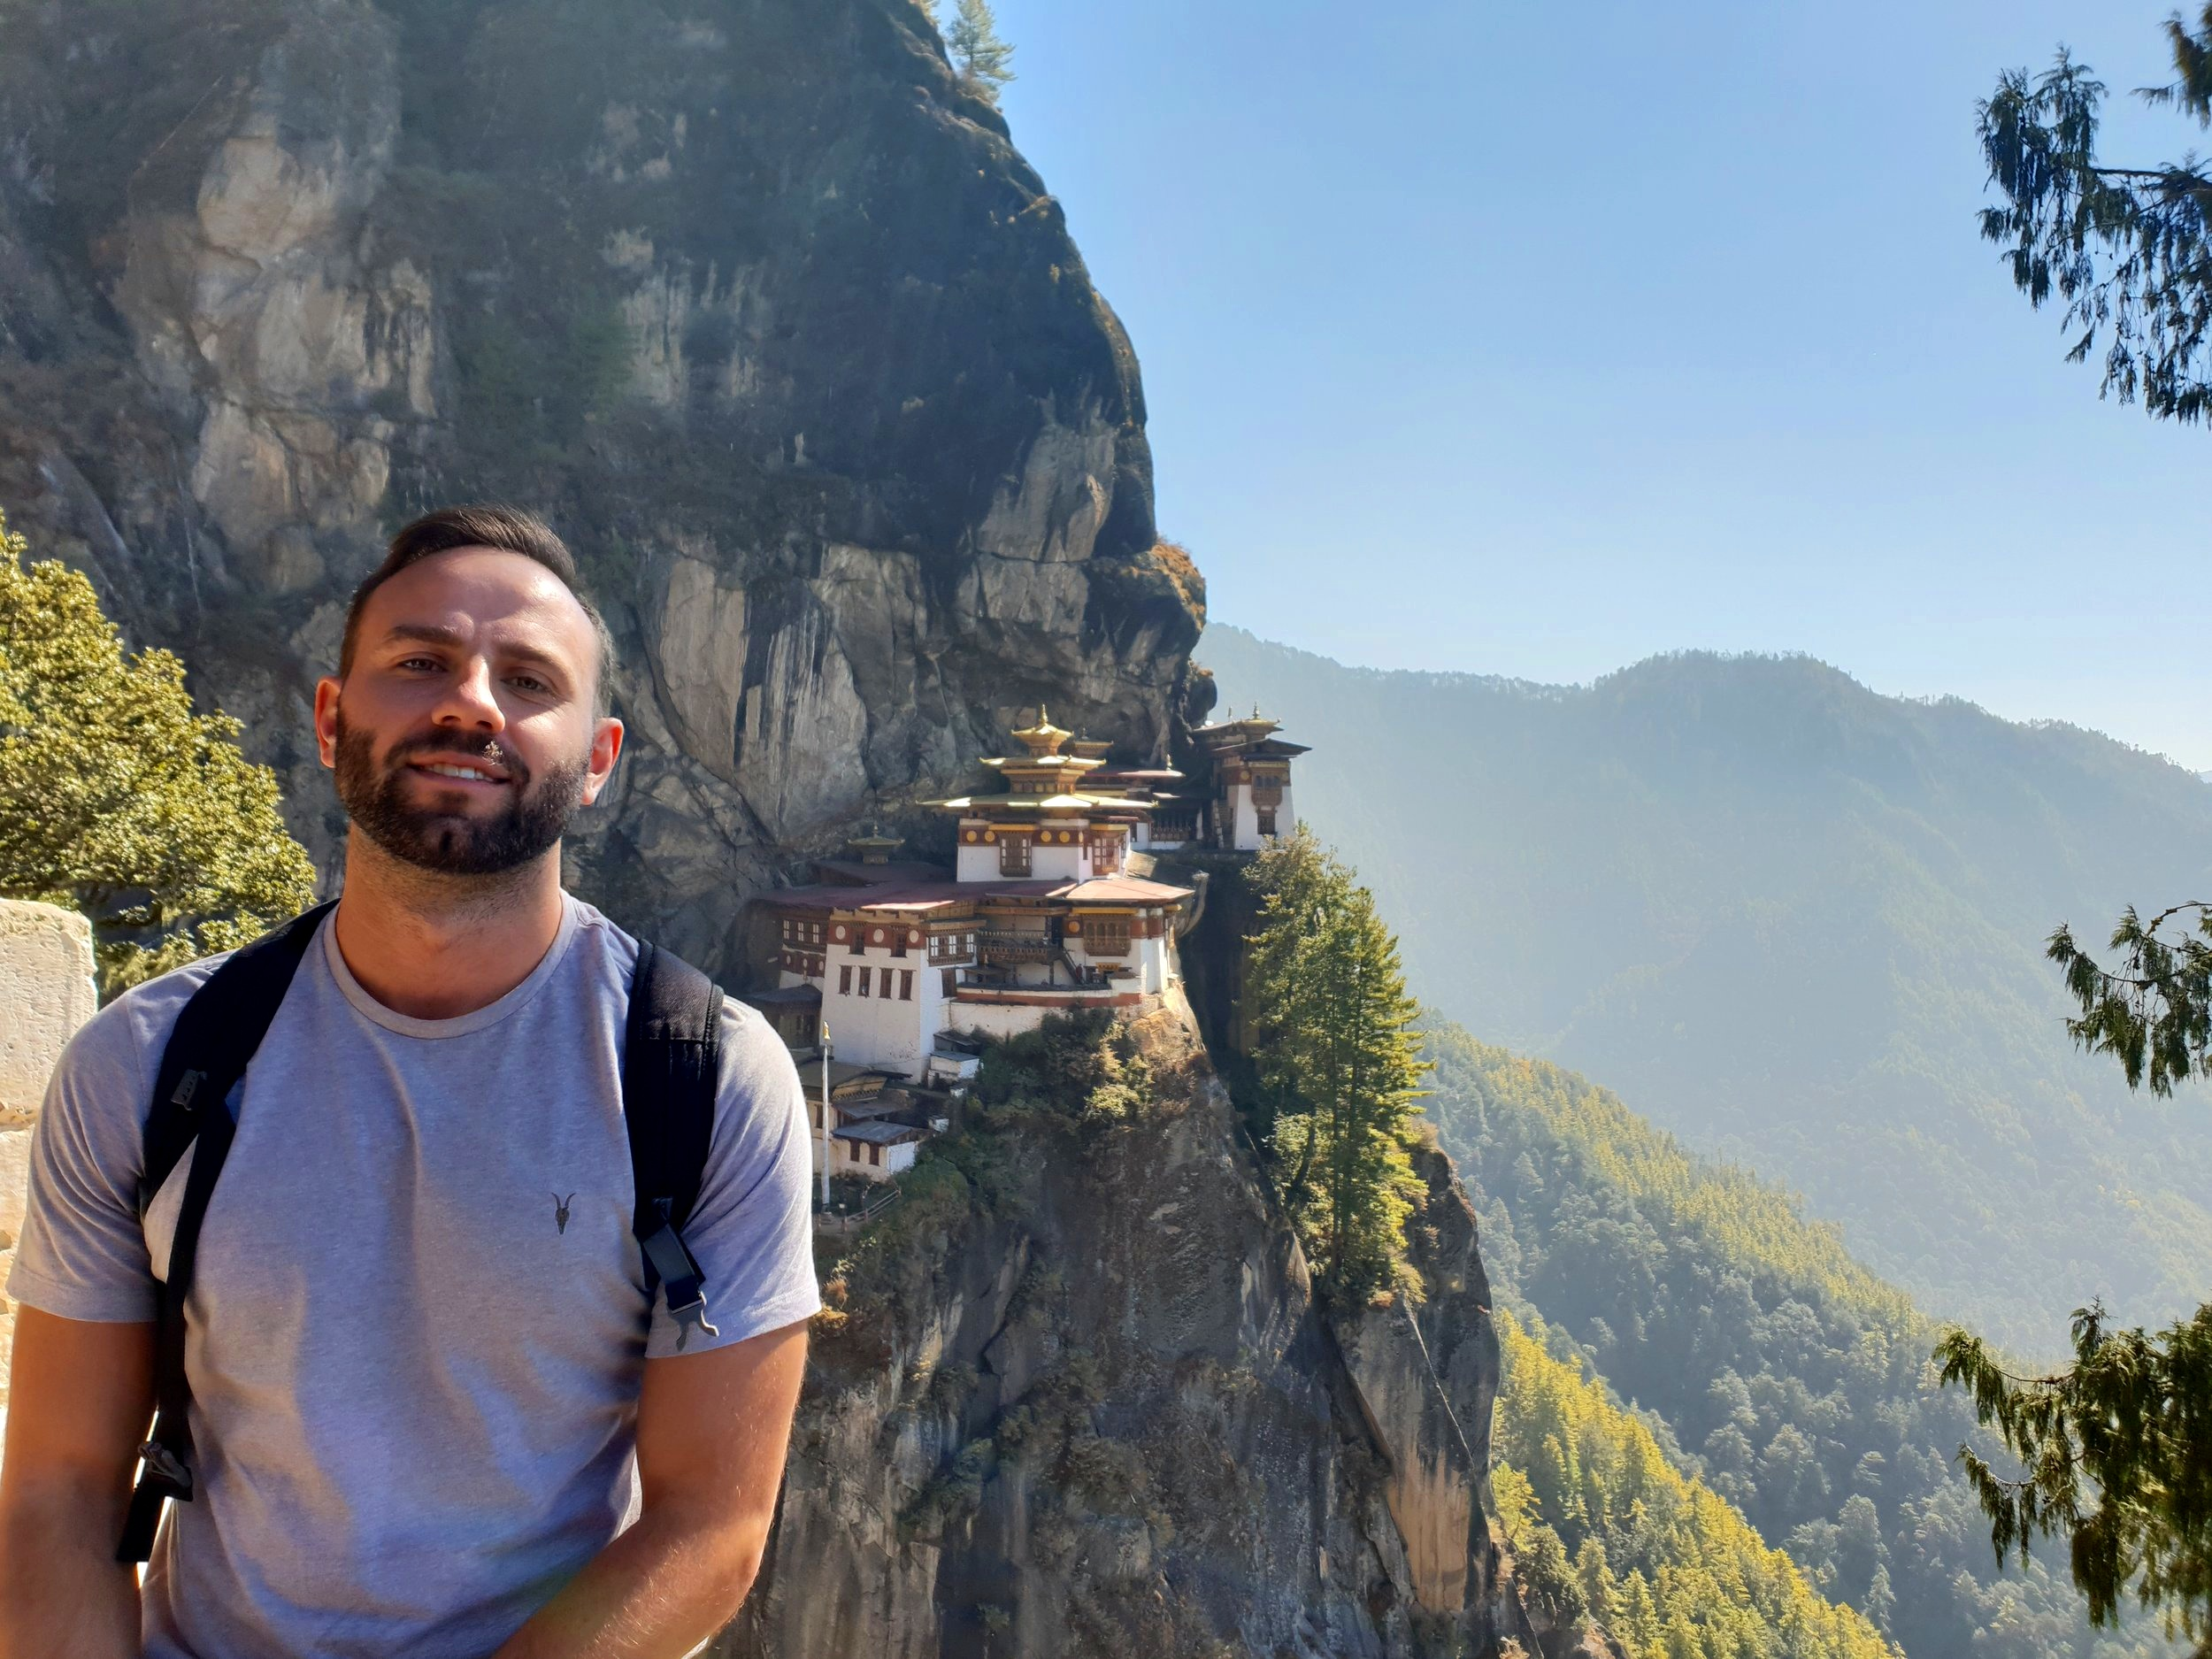 A great picture of the Tiger's nest, ruined by the image of an ape of the left hand side of the screen who insisted upon his inclusion in the photo. I doubt any picture is improved by the inclusion of a human, but for some reason this does not stop us all doing it.